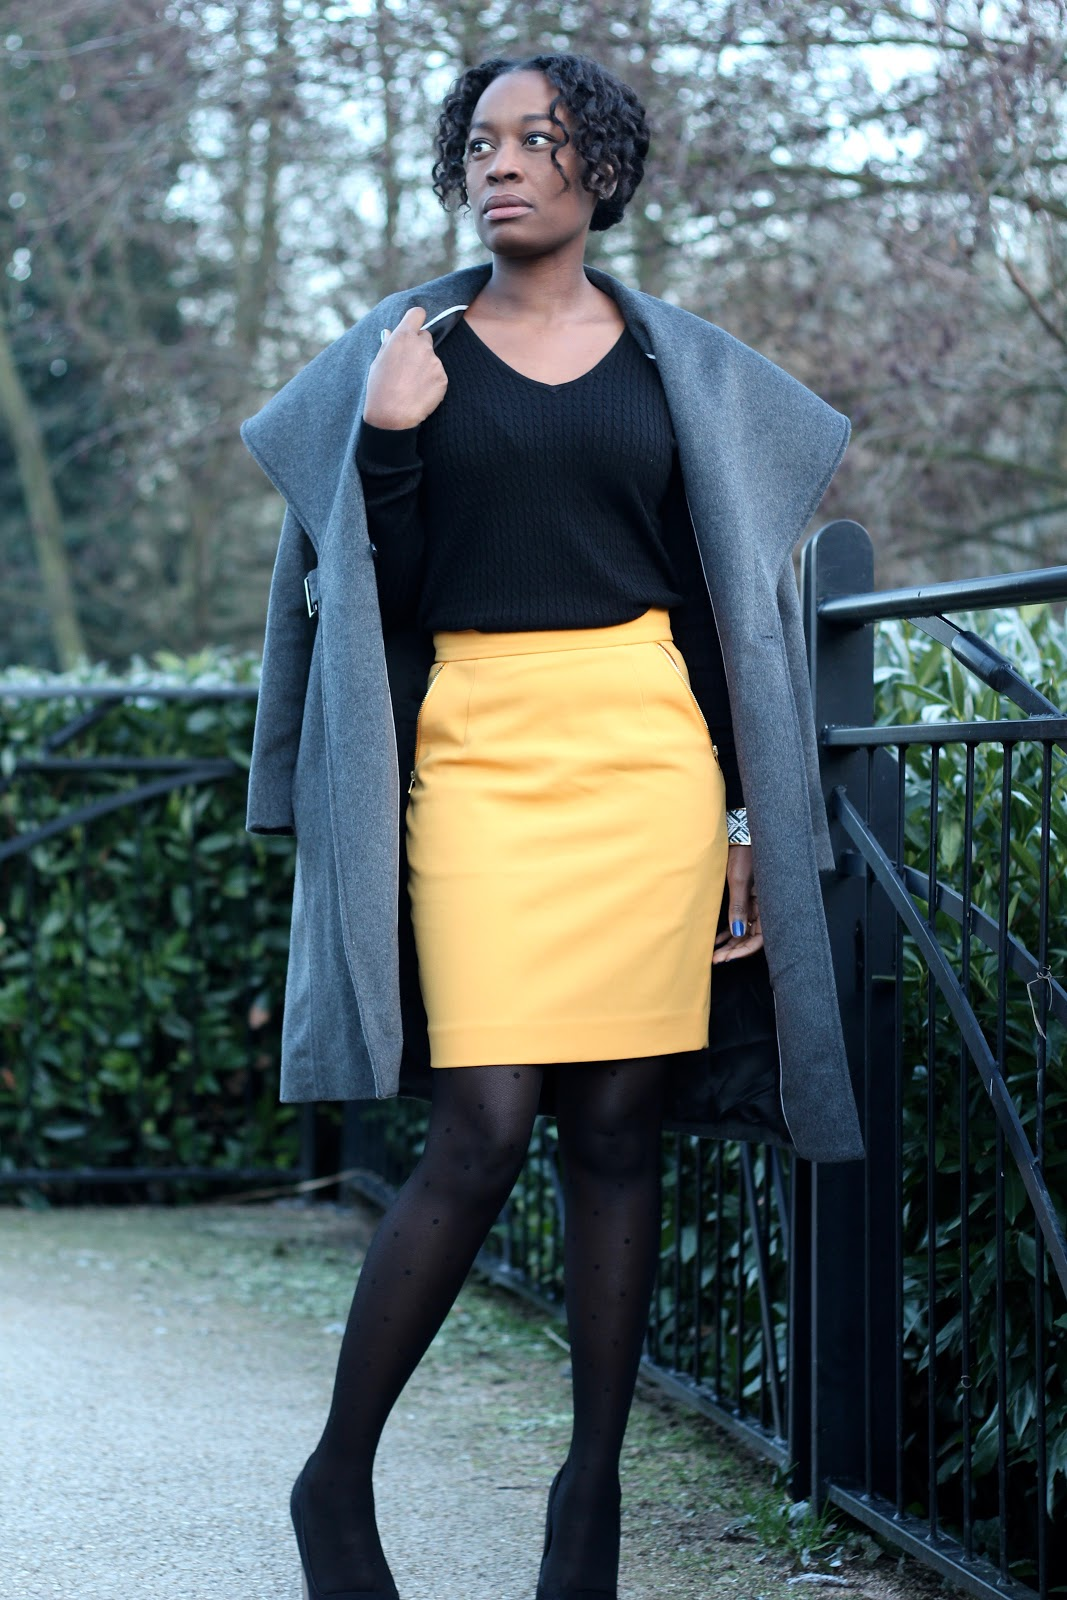 manteau mango-jupe h&m-collant calzedonia-chaussures asos-